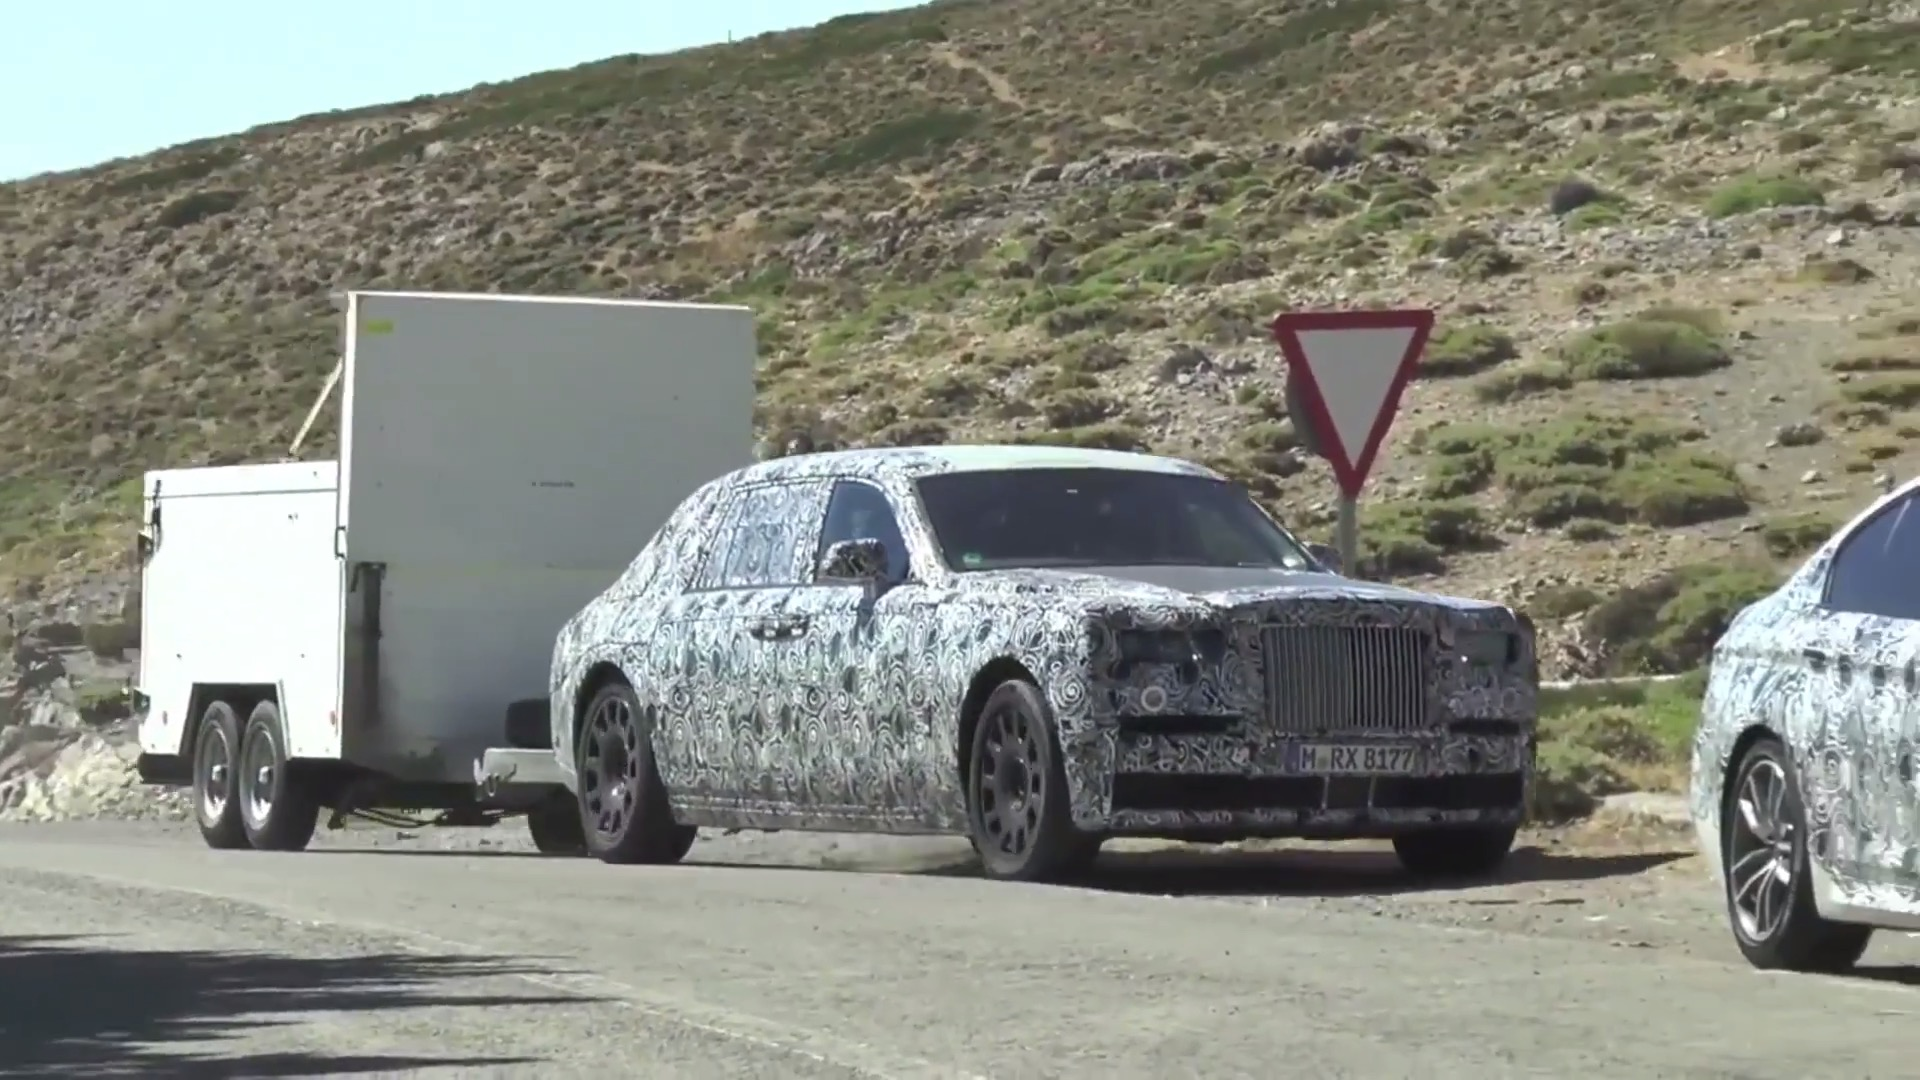 2018 Rolls Royce Phantom Spied Towing A Cargo Trailer At